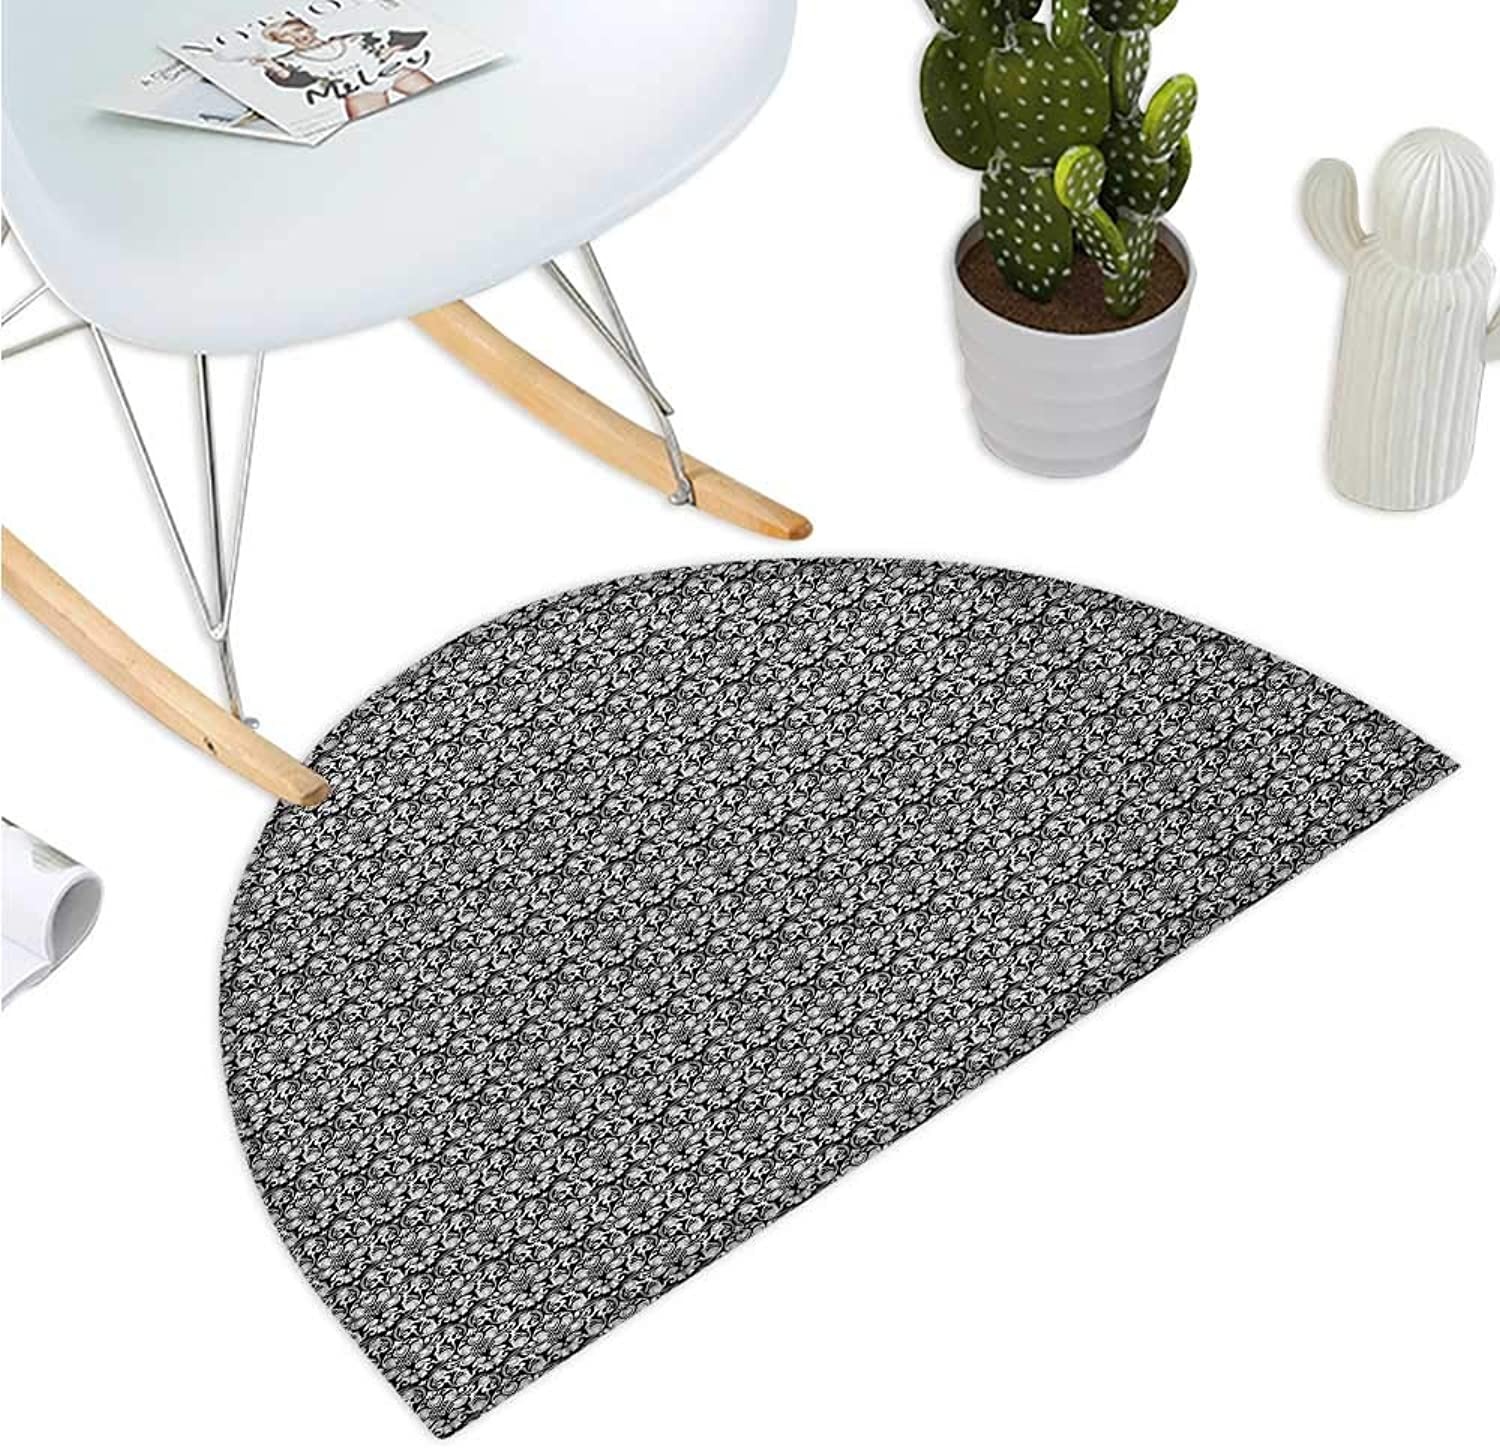 Black and White Semicircular Cushion Scroll Curly Leaves and Petals with Swirl Details Monochrome Design Entry Door Mat H 43.3  xD 64.9  Black and White